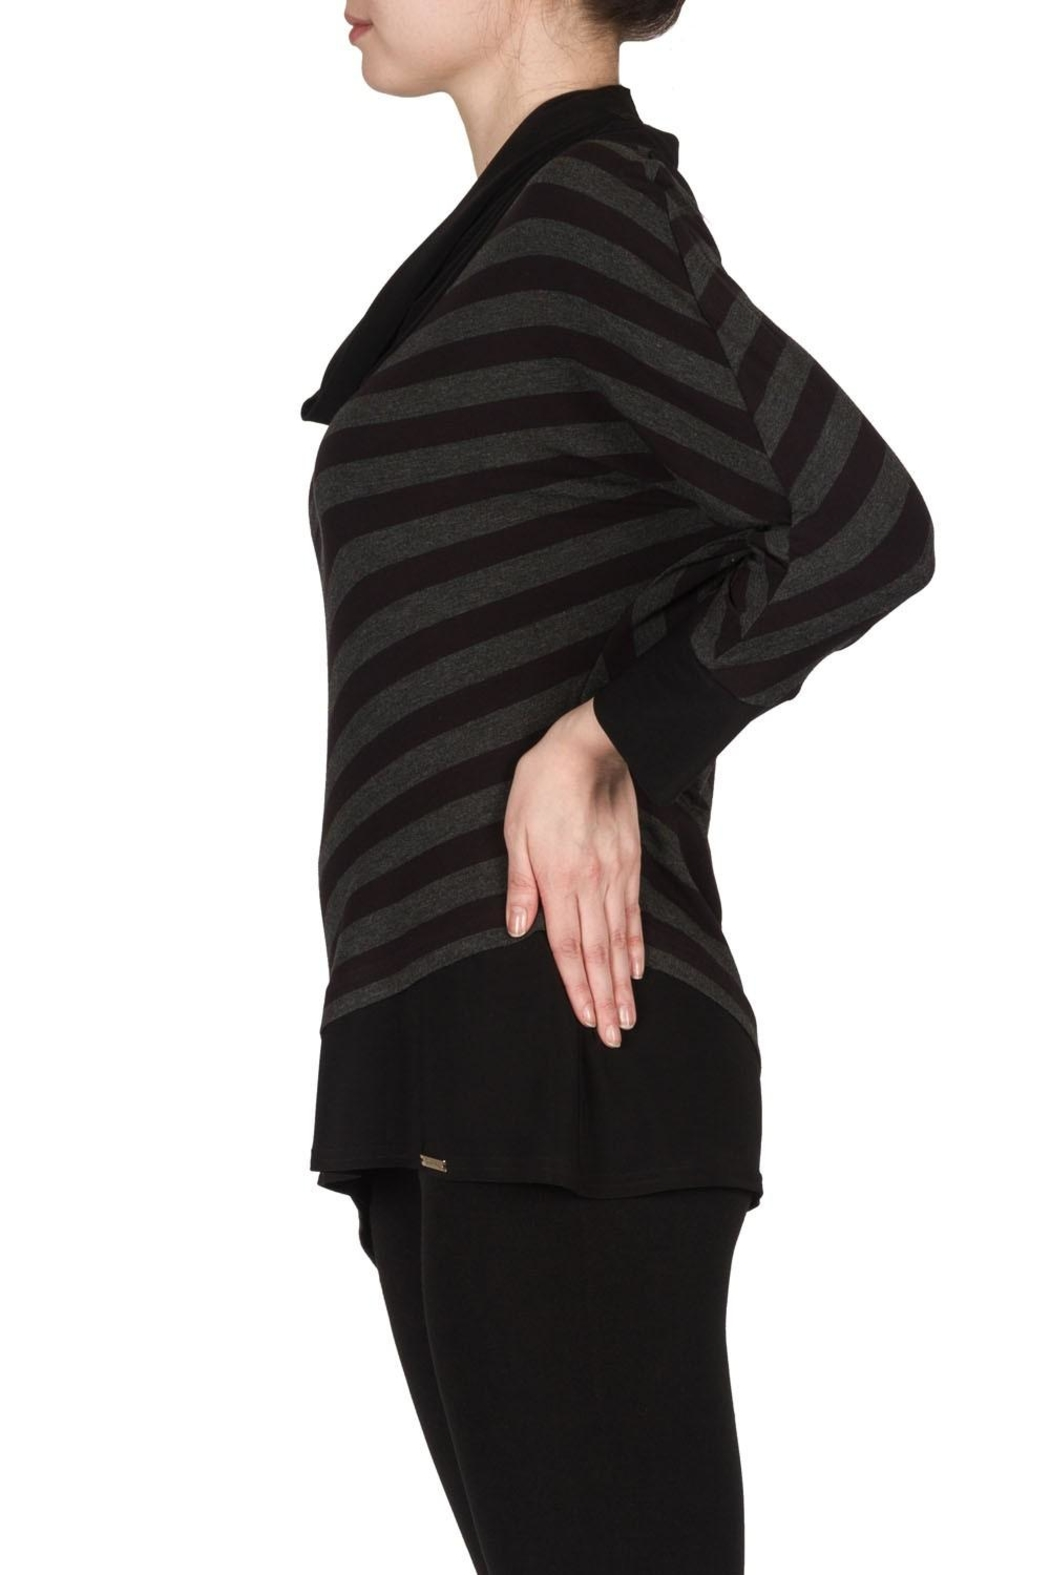 Joseph Ribkoff Striped Cowl Top - Side Cropped Image